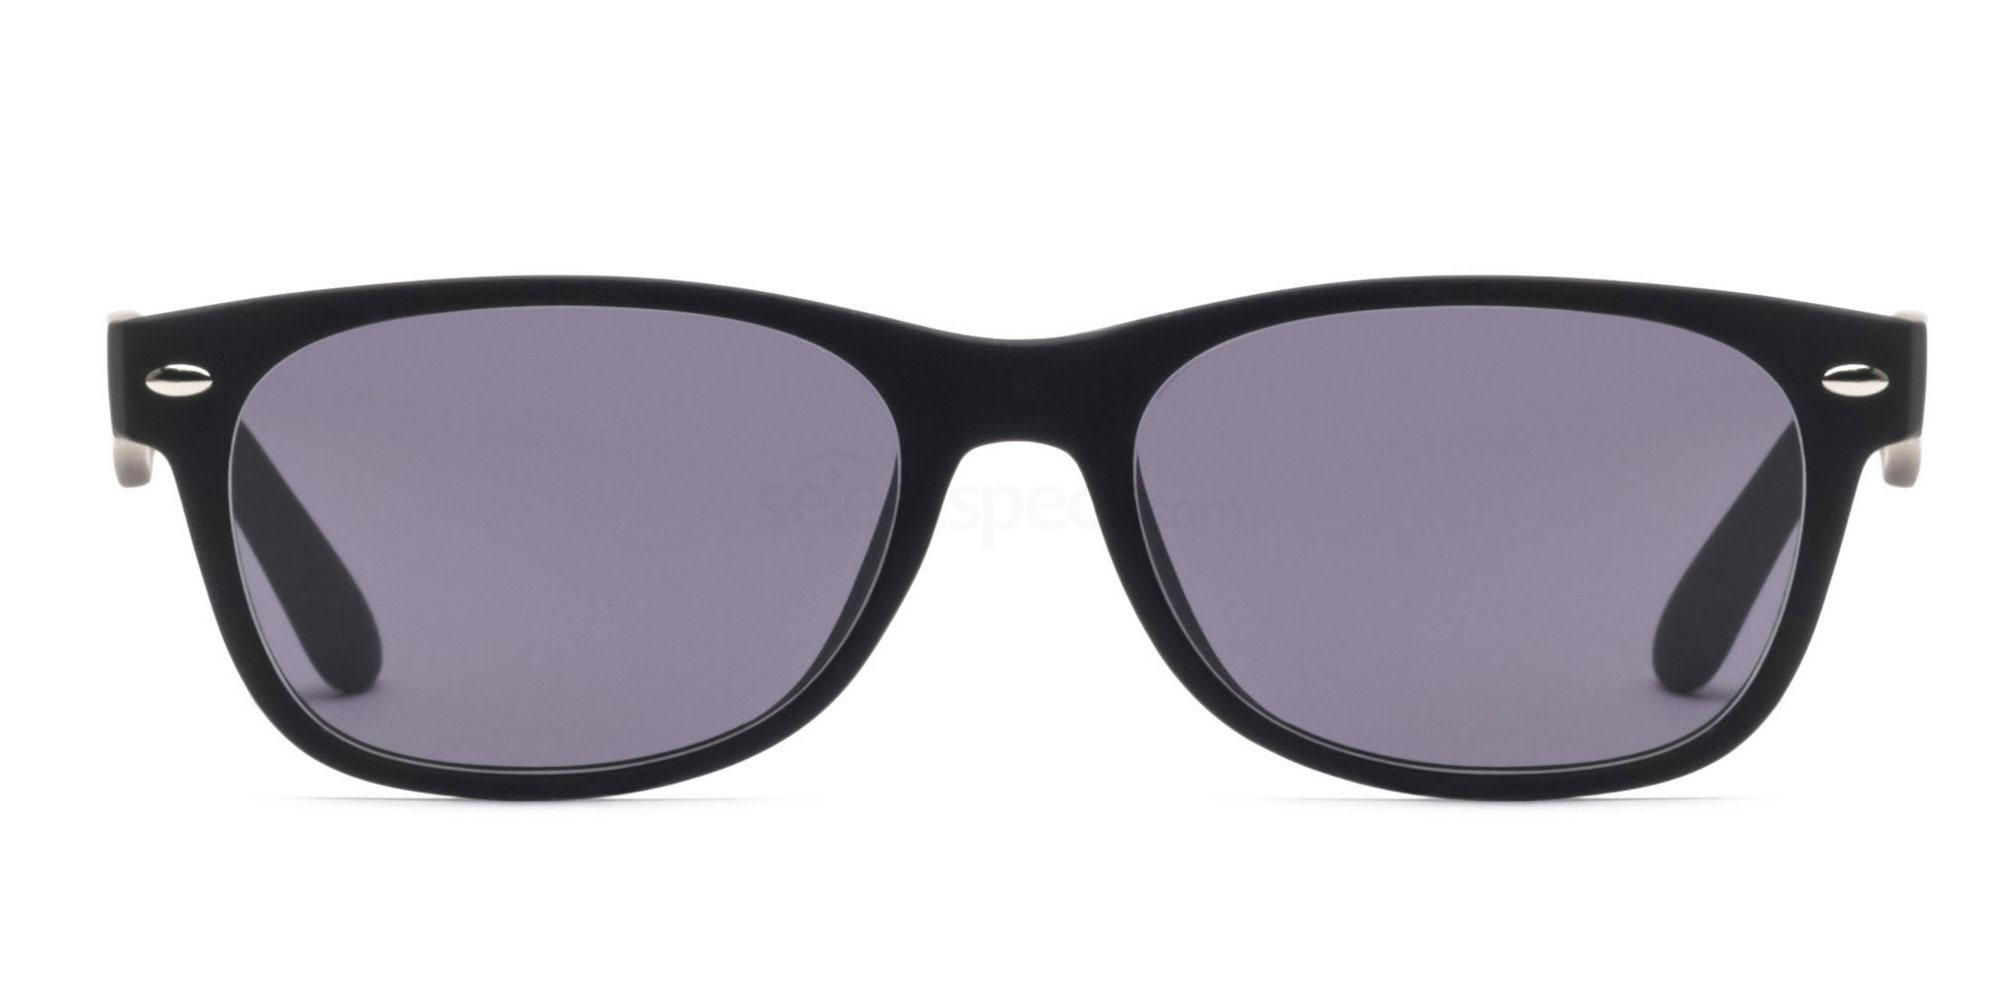 £10 wayfarers budget sunglasses uk